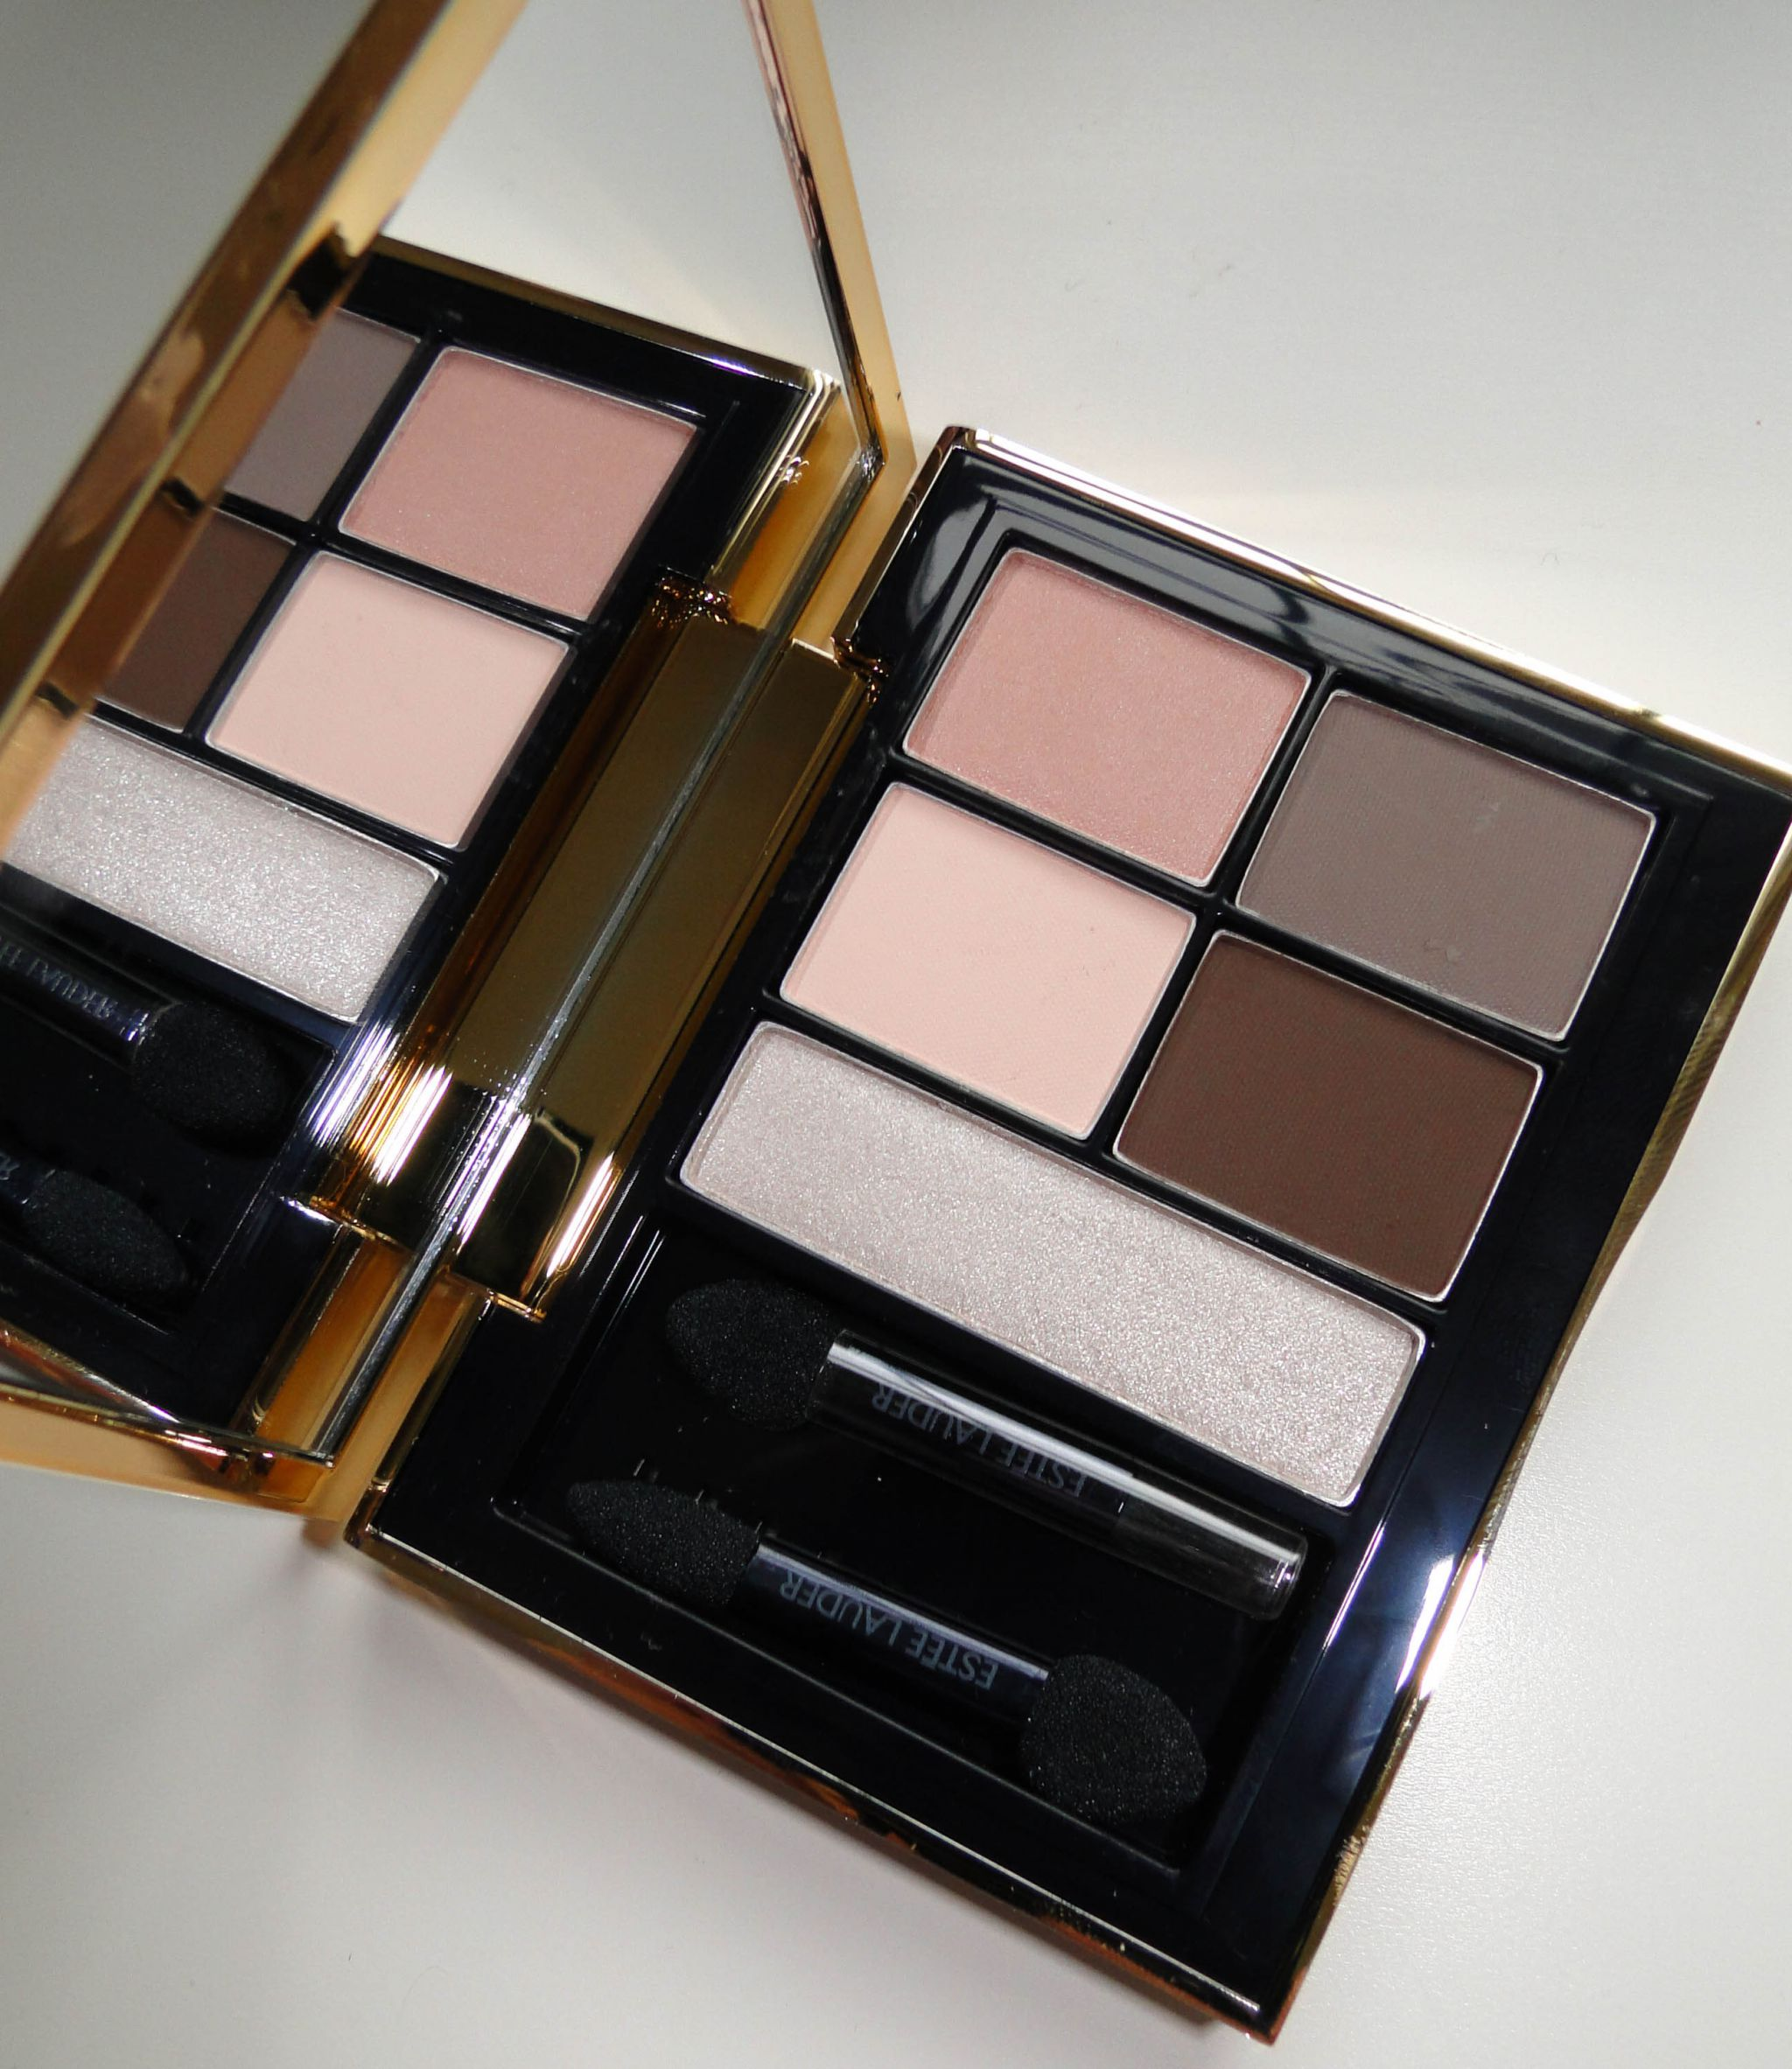 Estee Lauder Pure Color Envy Sculpting Eyeshadow - Provocative Petal